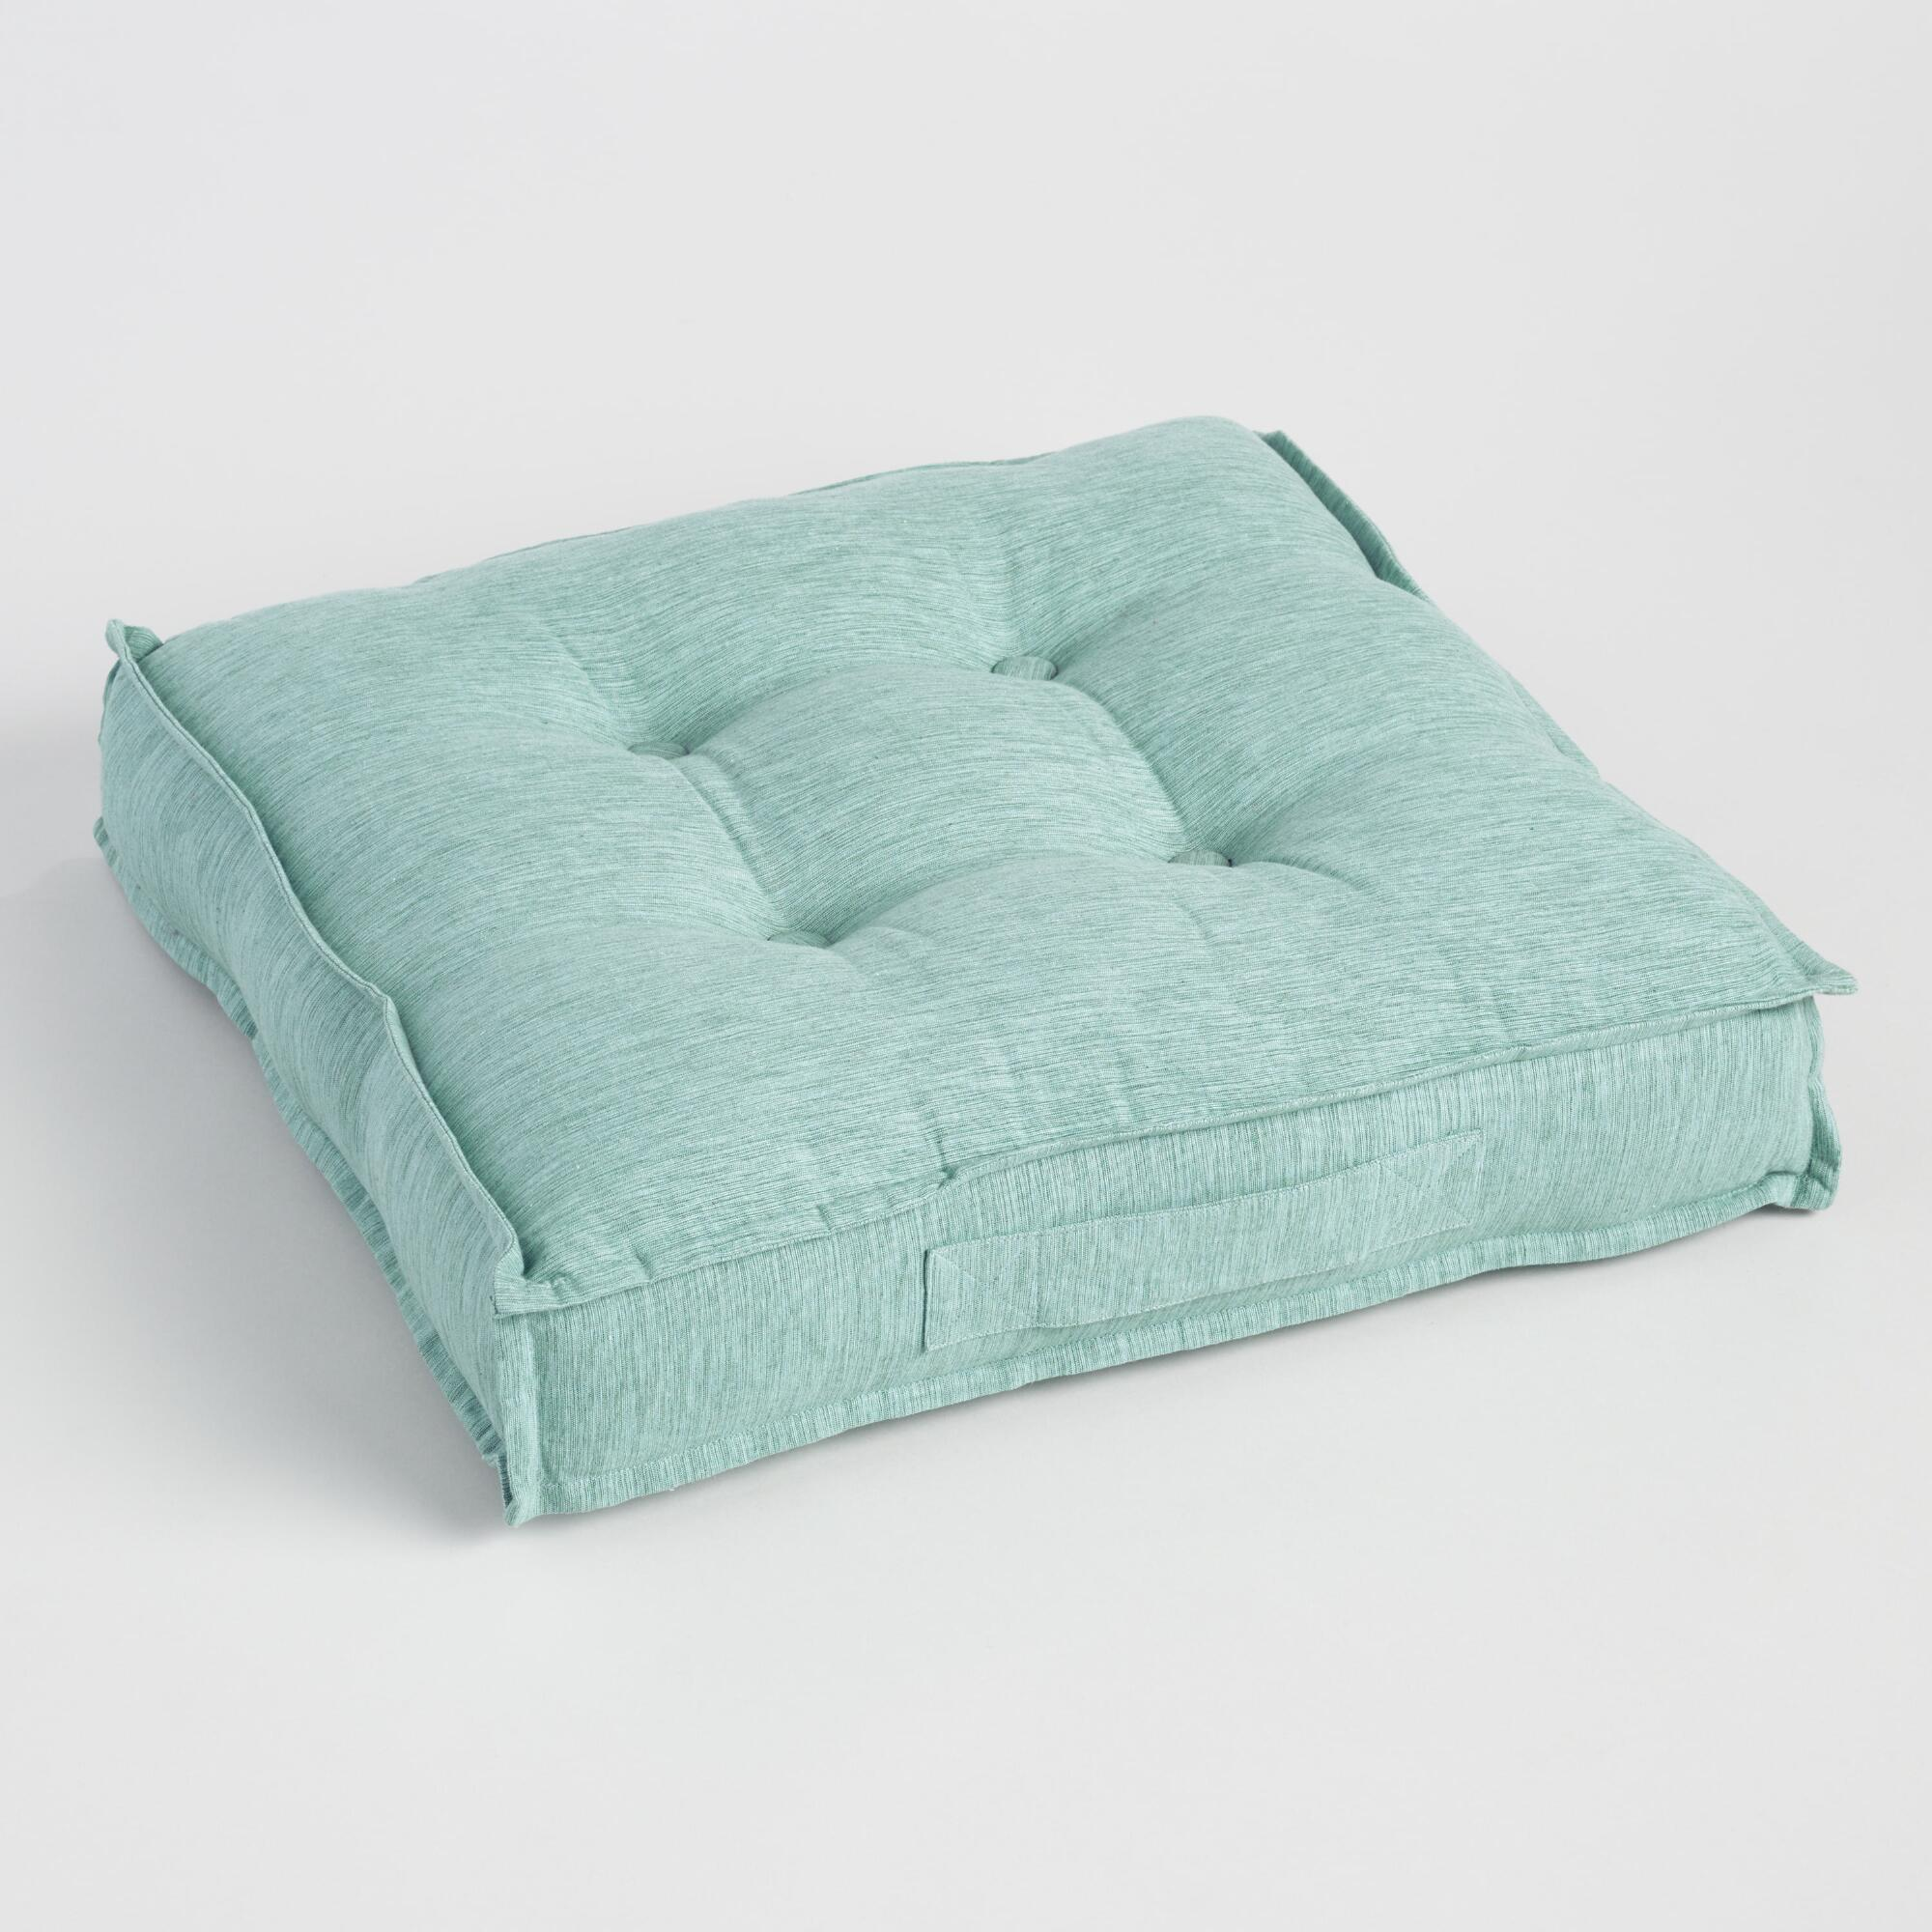 Chinois Aqua Khadi Tufted Floor Cushion World Market